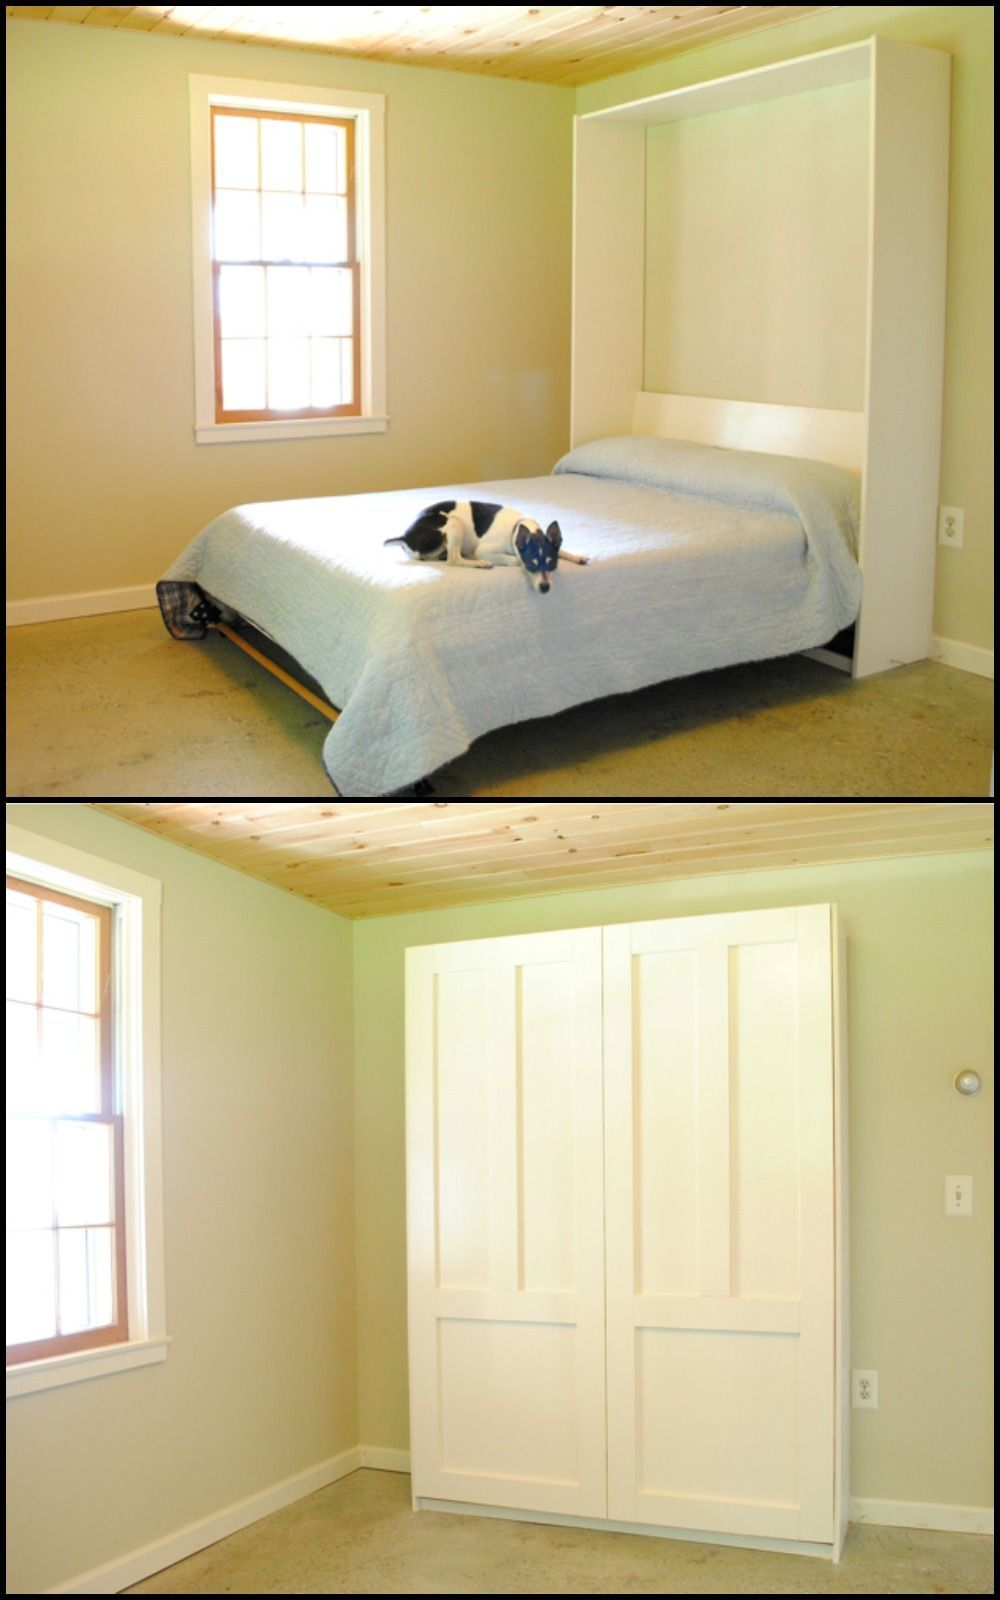 Do you have a spareguest room that doubles as your home office or